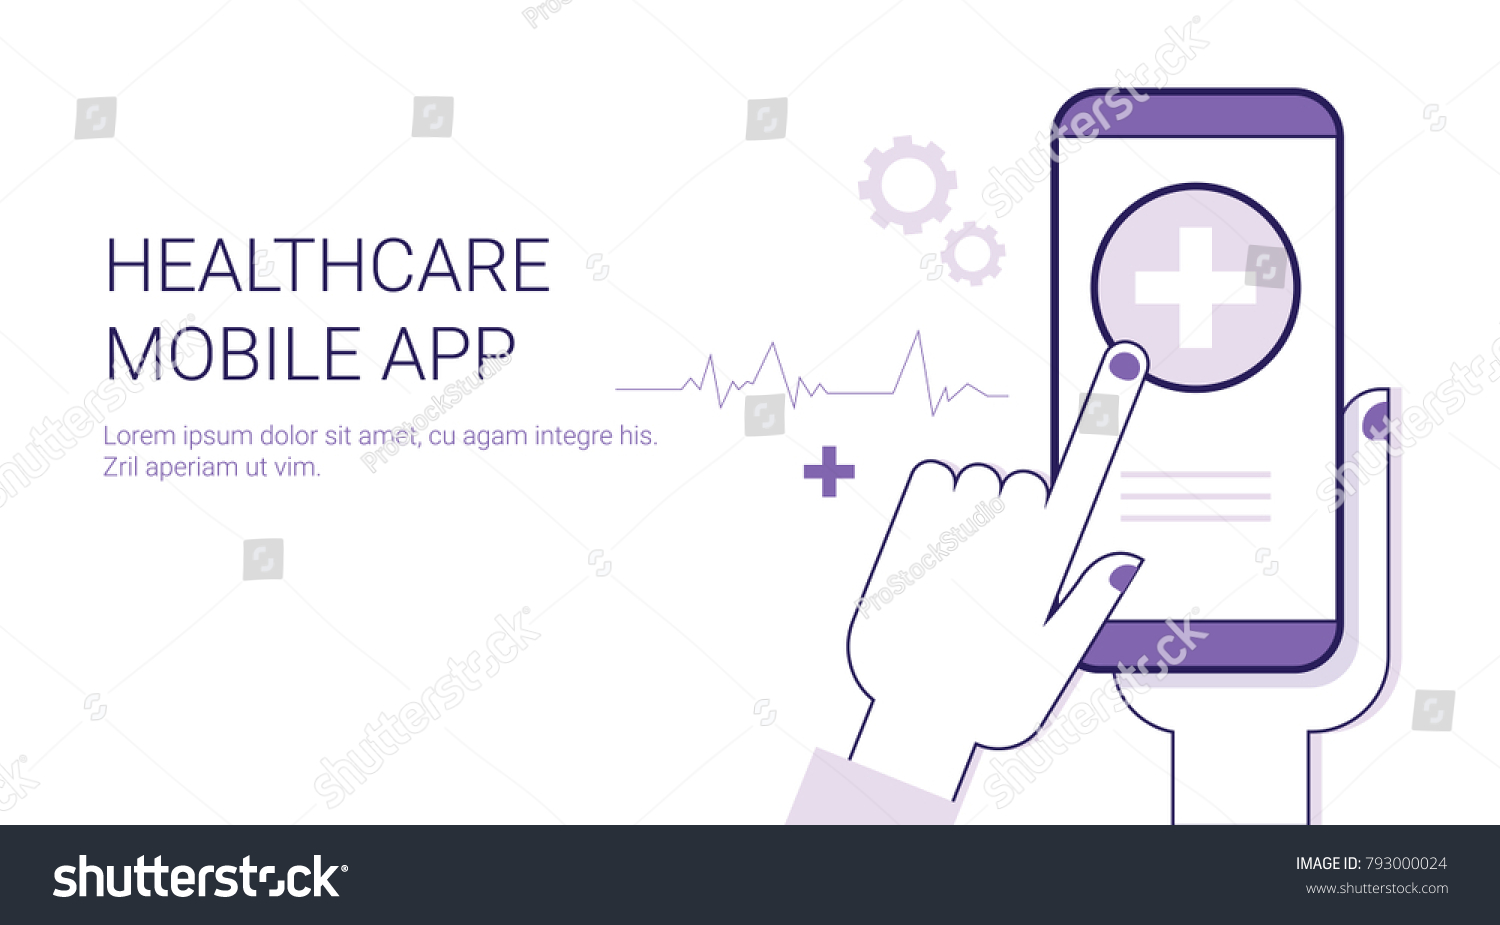 Healthcare Mobile Application Business Concept Template Stock Vector Remote Stethoscope Diagram Web Banner With Copy Space Illustration